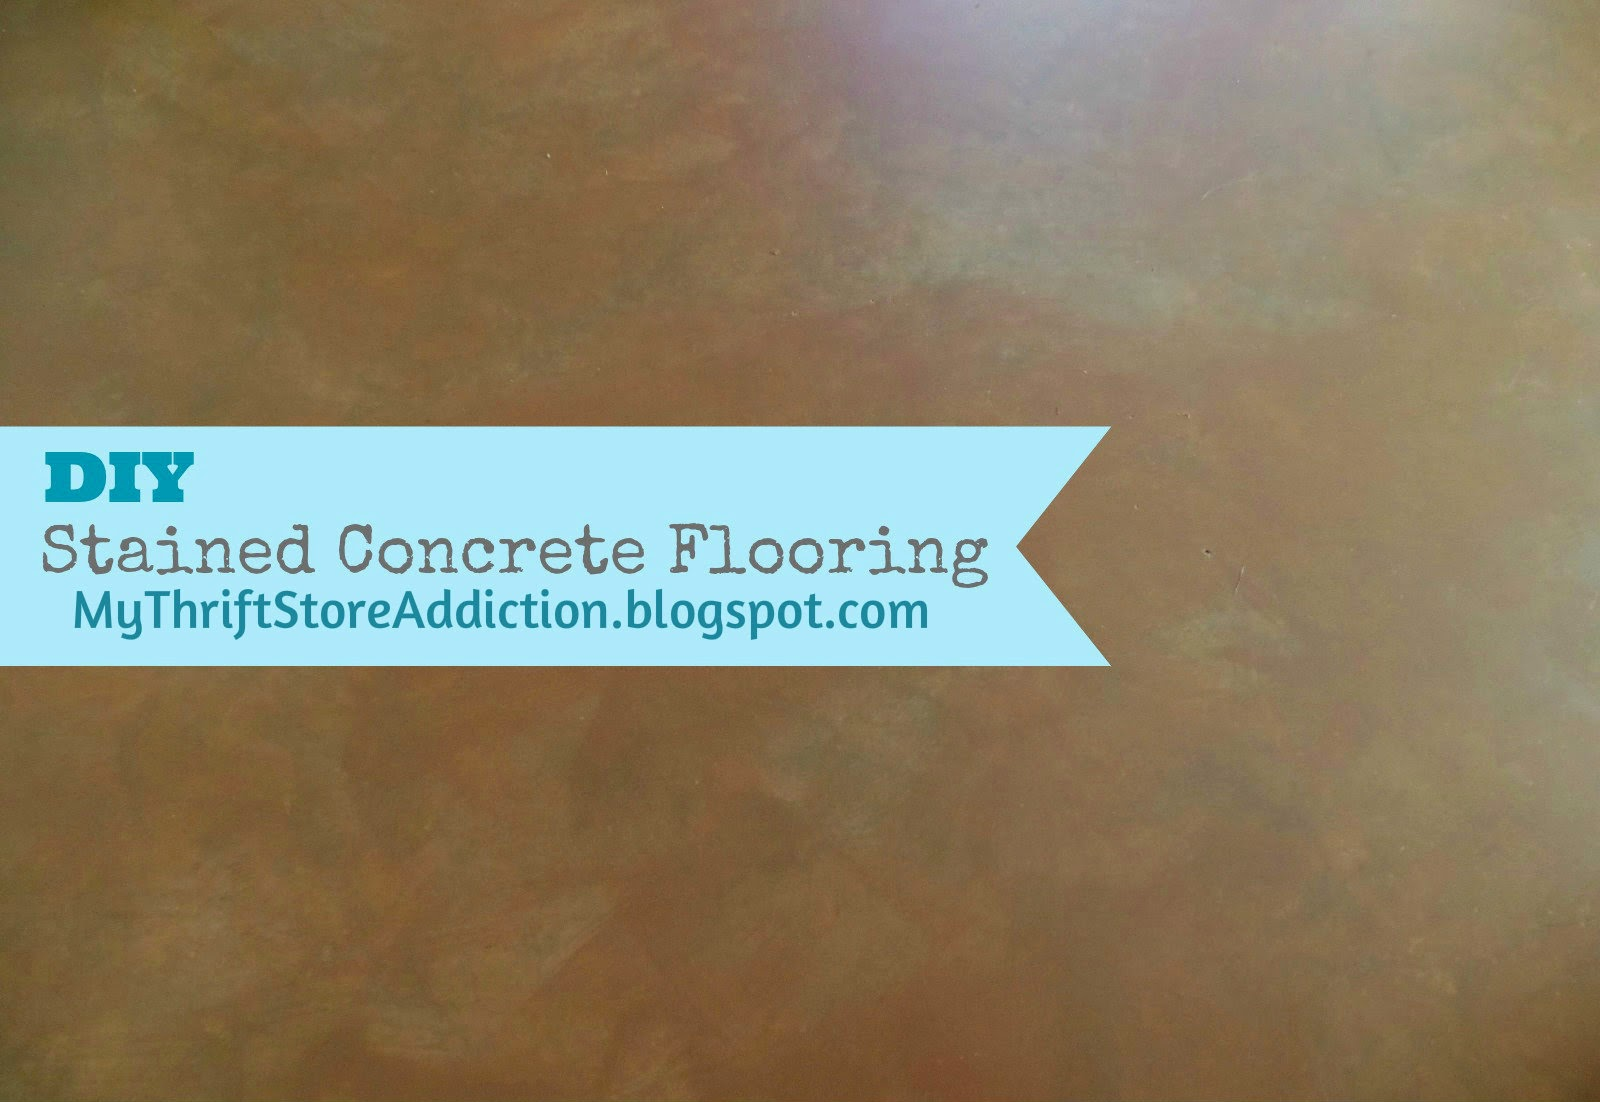 DIY stained concrete flooring